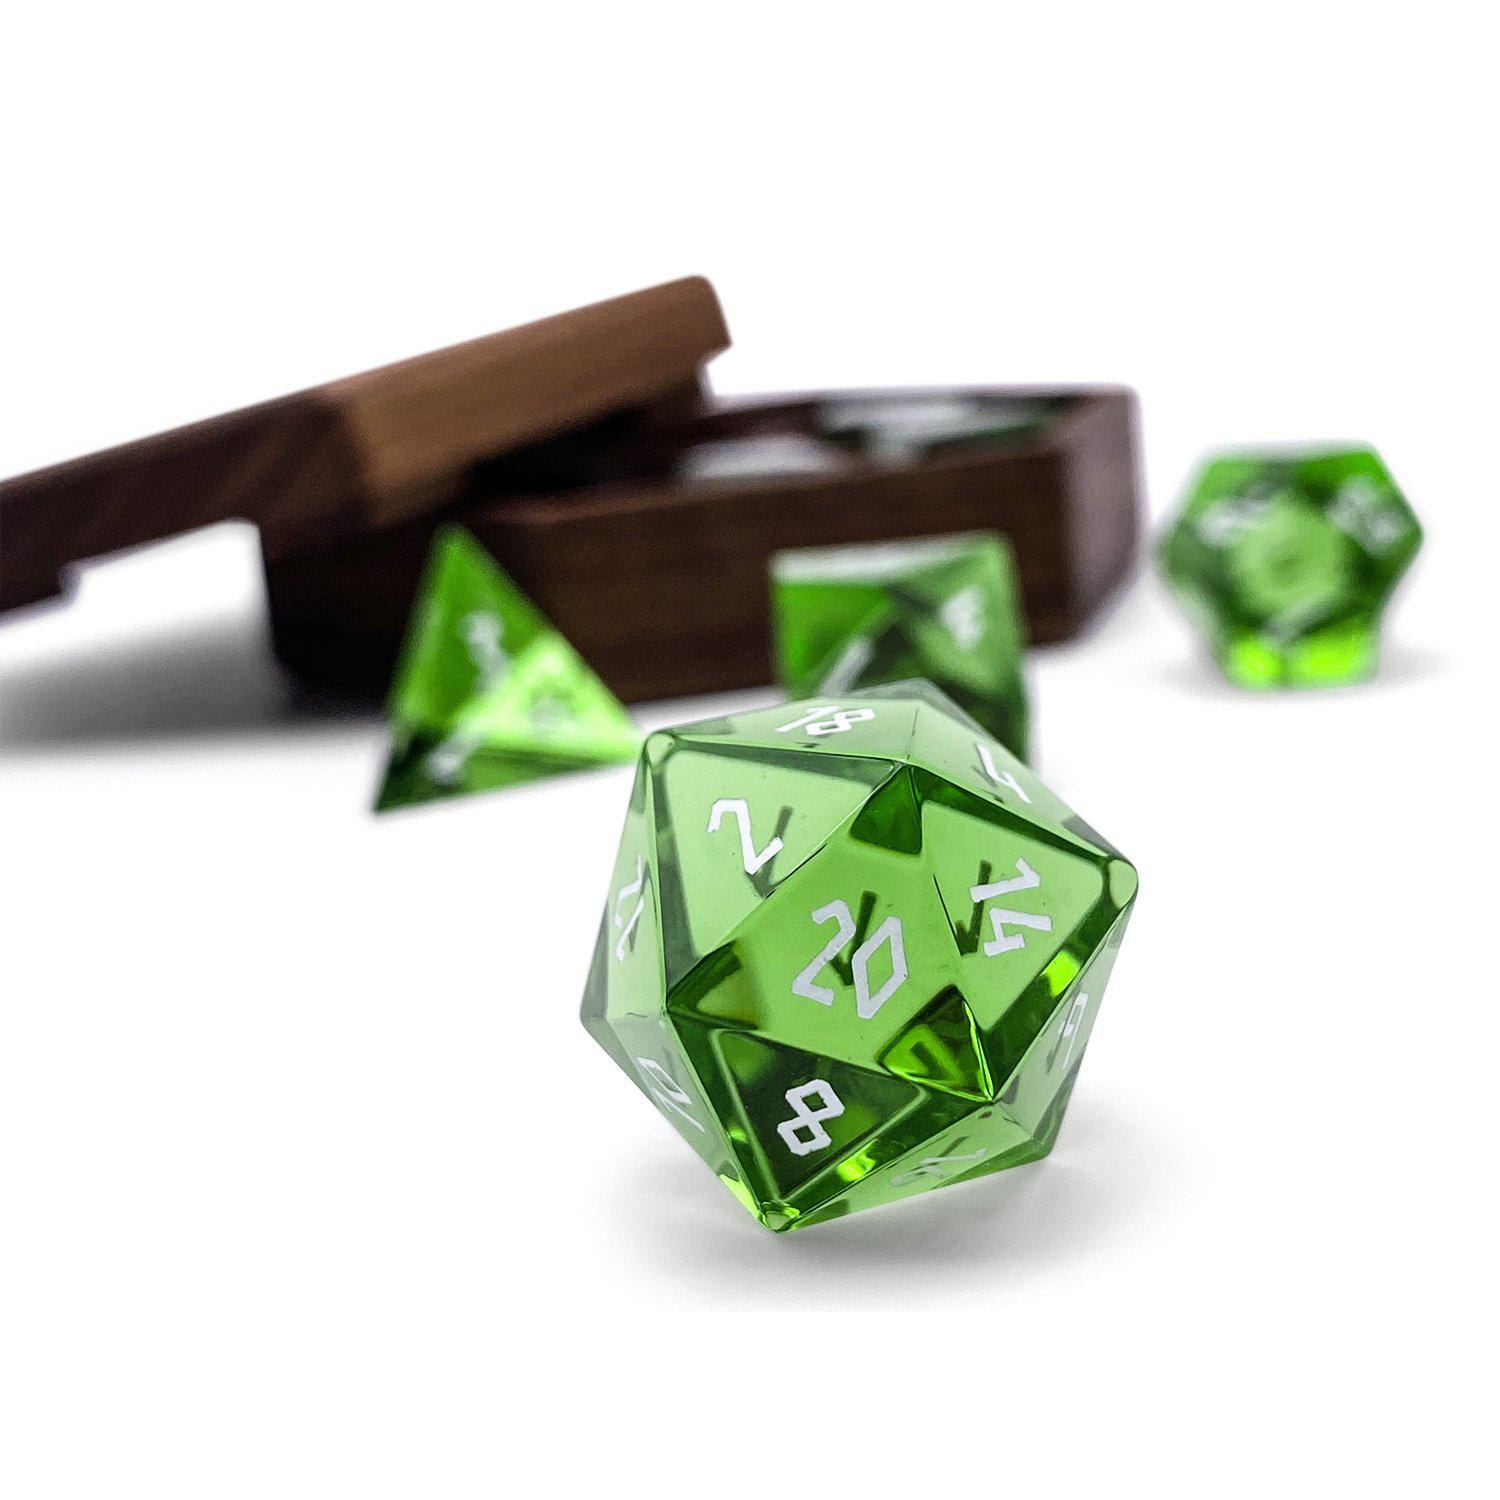 Zircon Glass - Emerald - 7 Piece Glass Dice Set